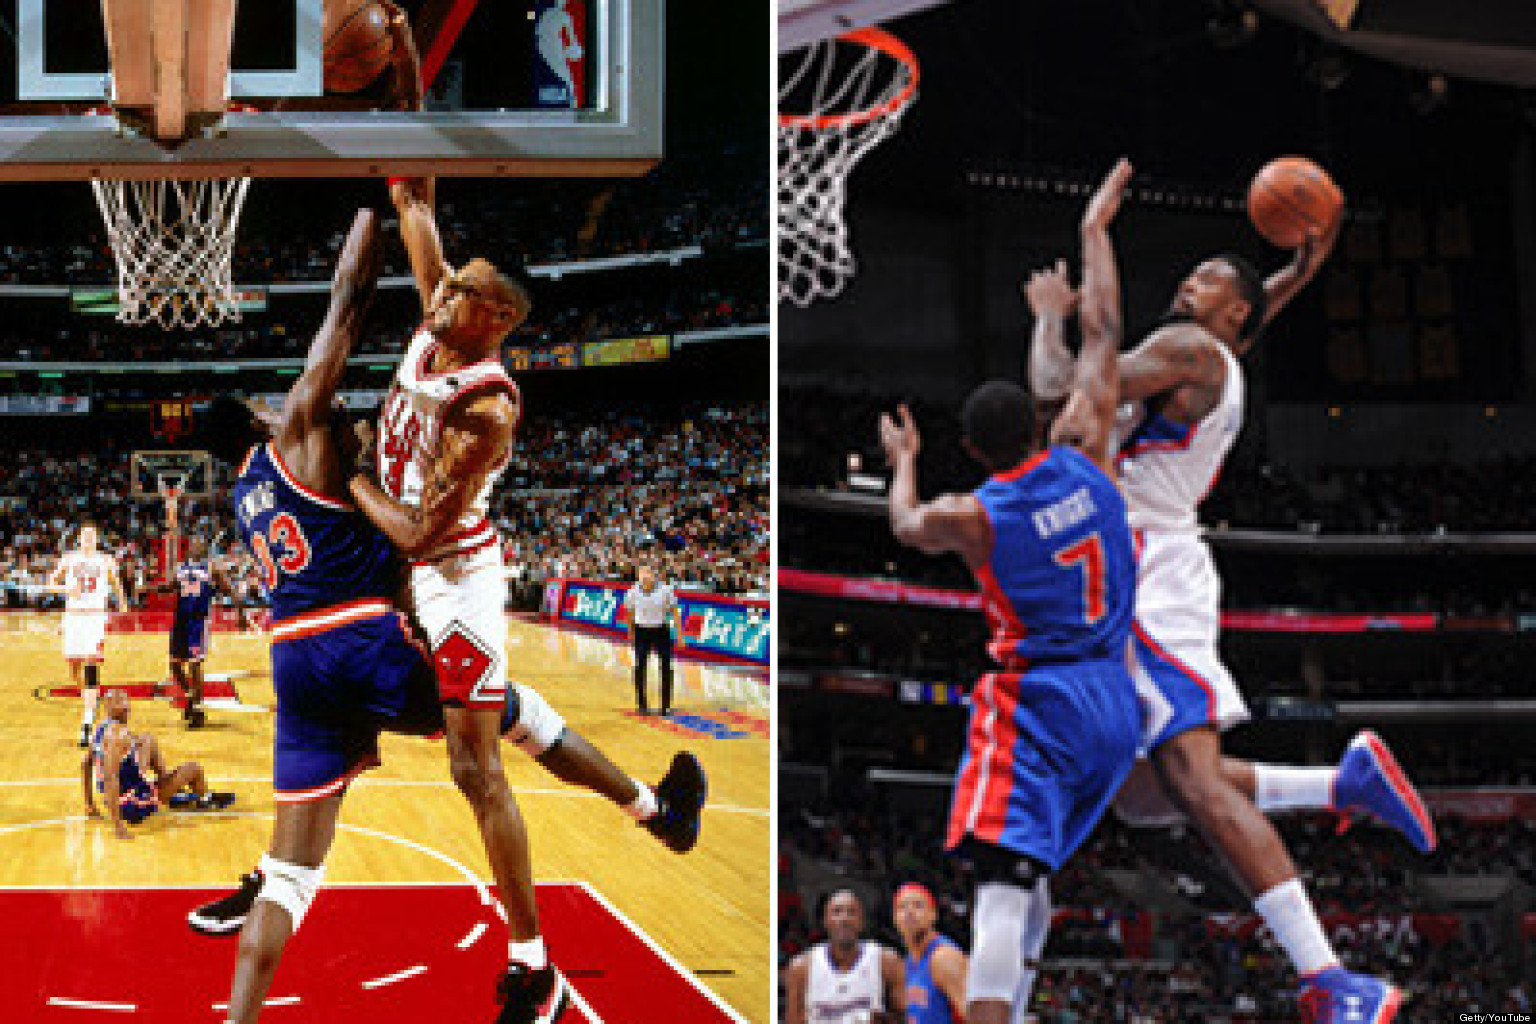 Fall Be Kind Wallpaper Deandre Jordan Dunk Over Brandon Knight Joins Shawn Kemp S